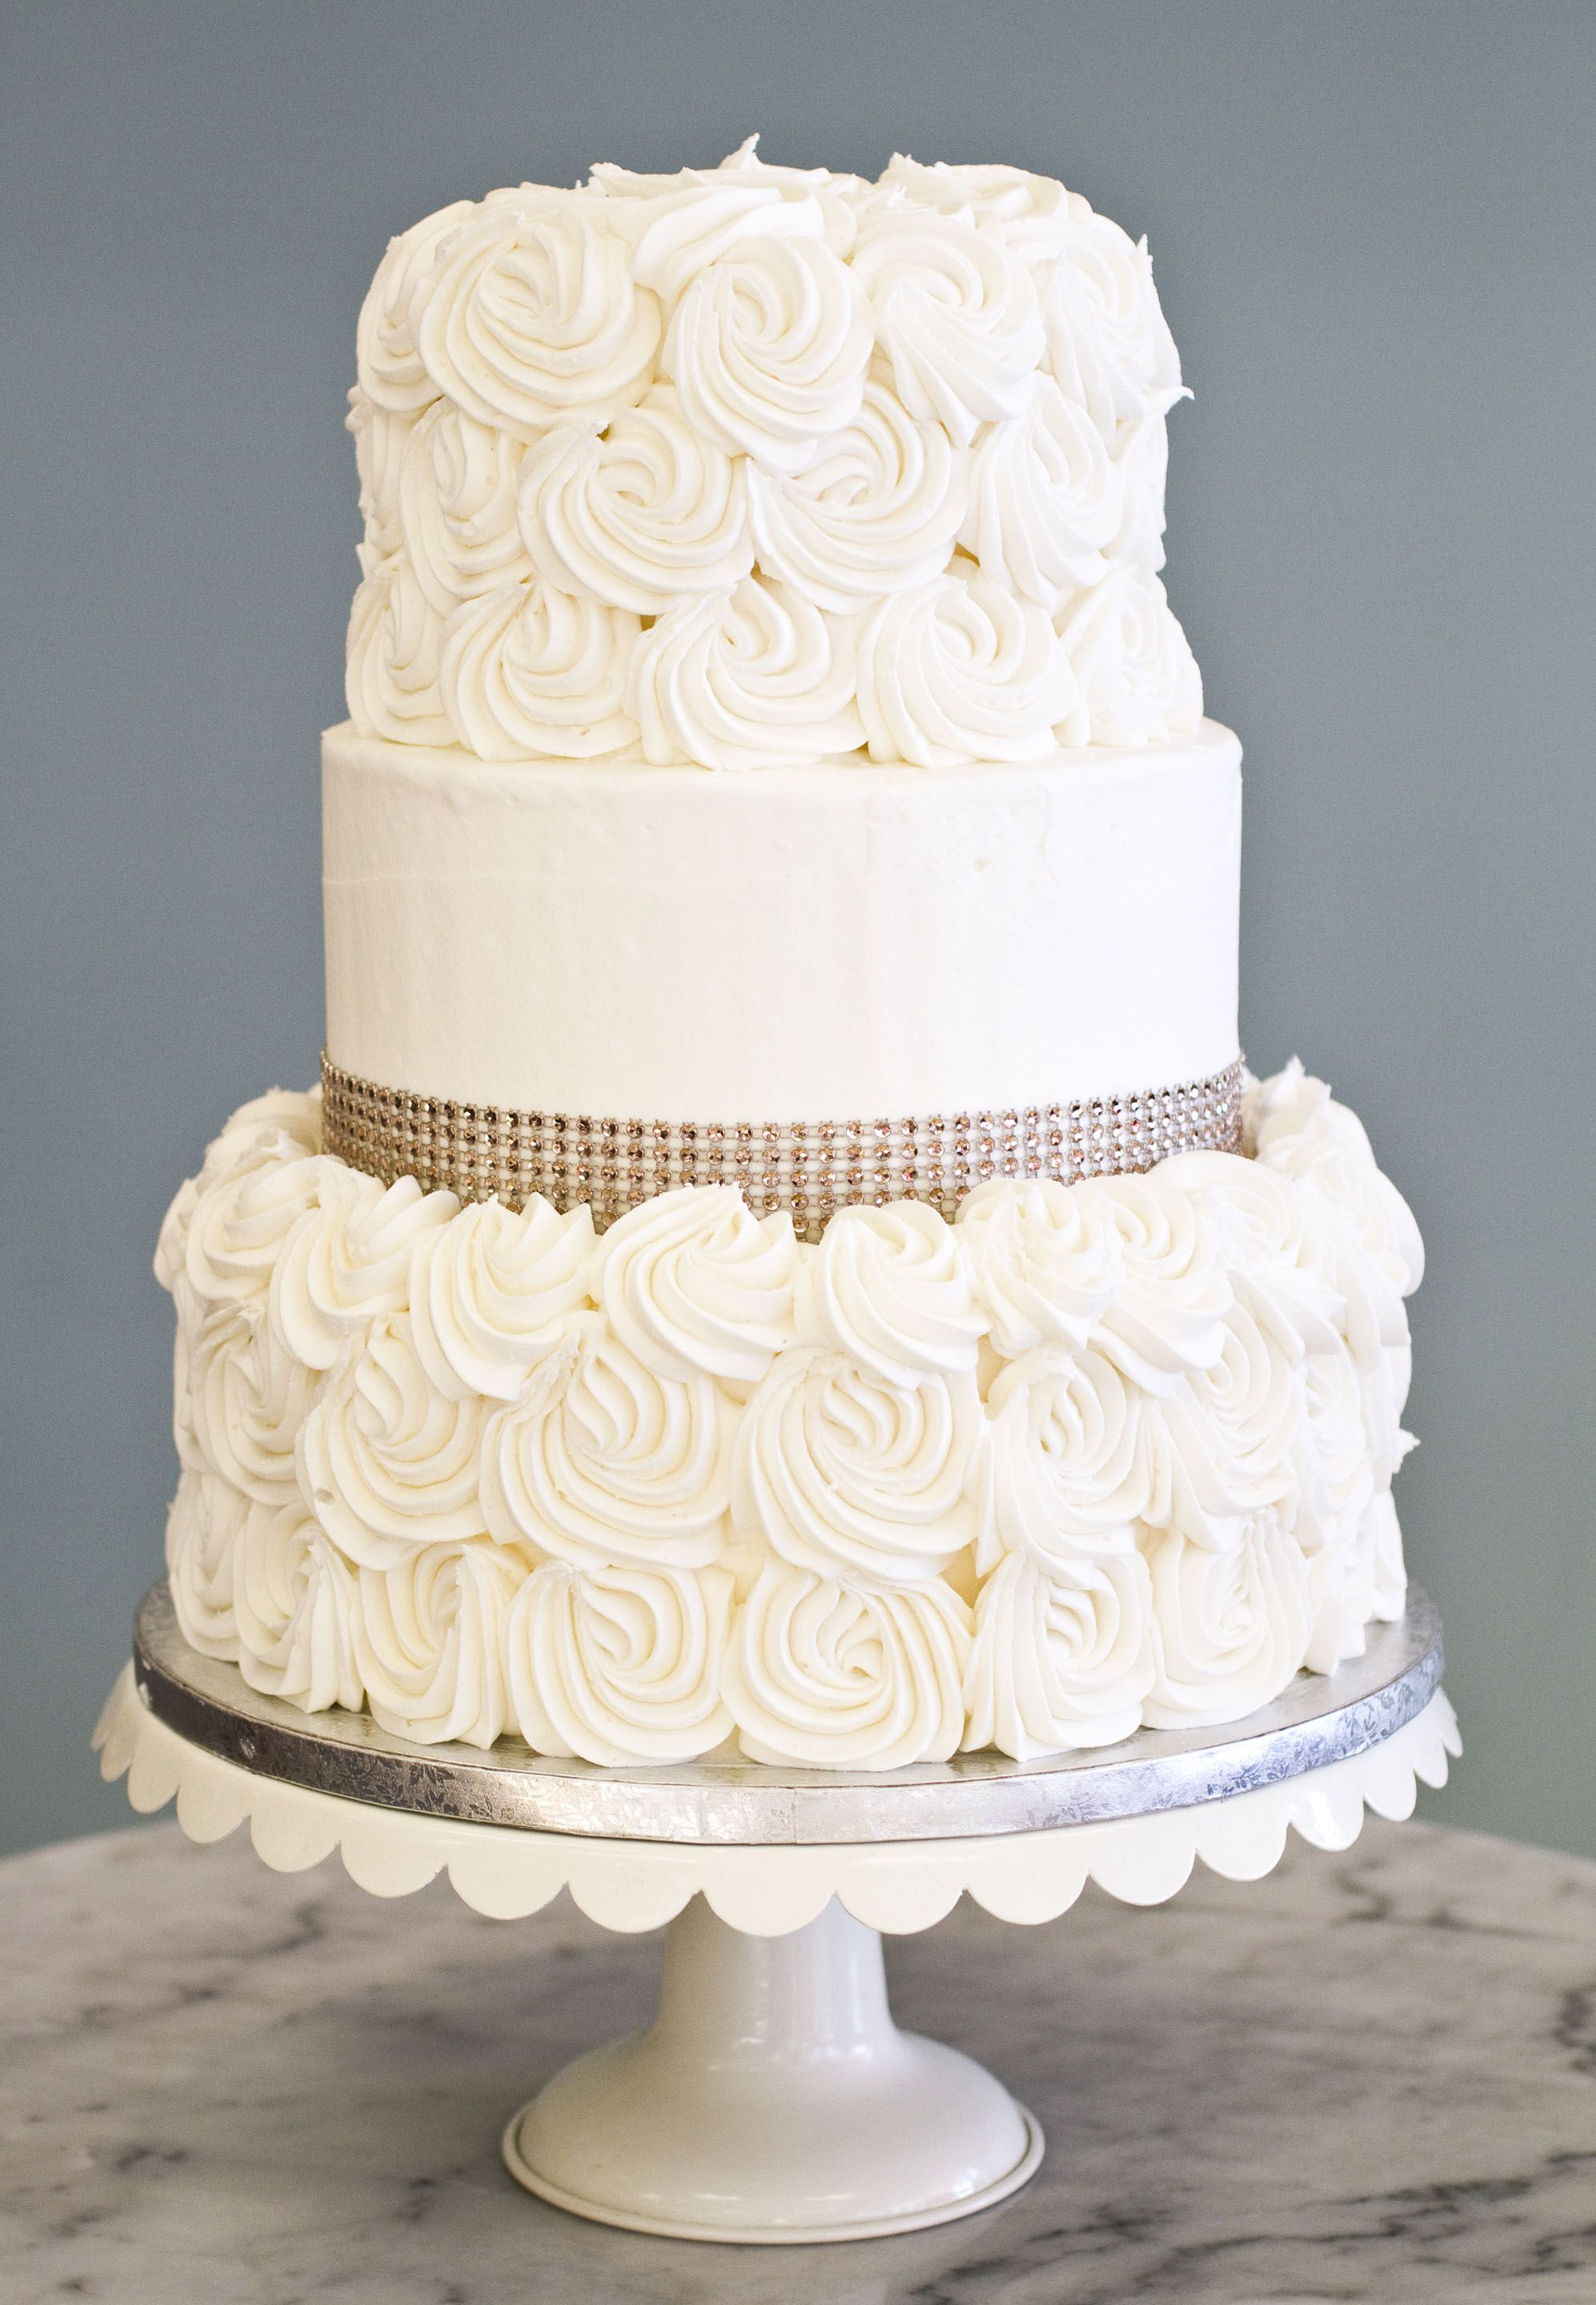 Simple Wedding Cakes Pinterest  A simple elegant wedding cake with rosettes and